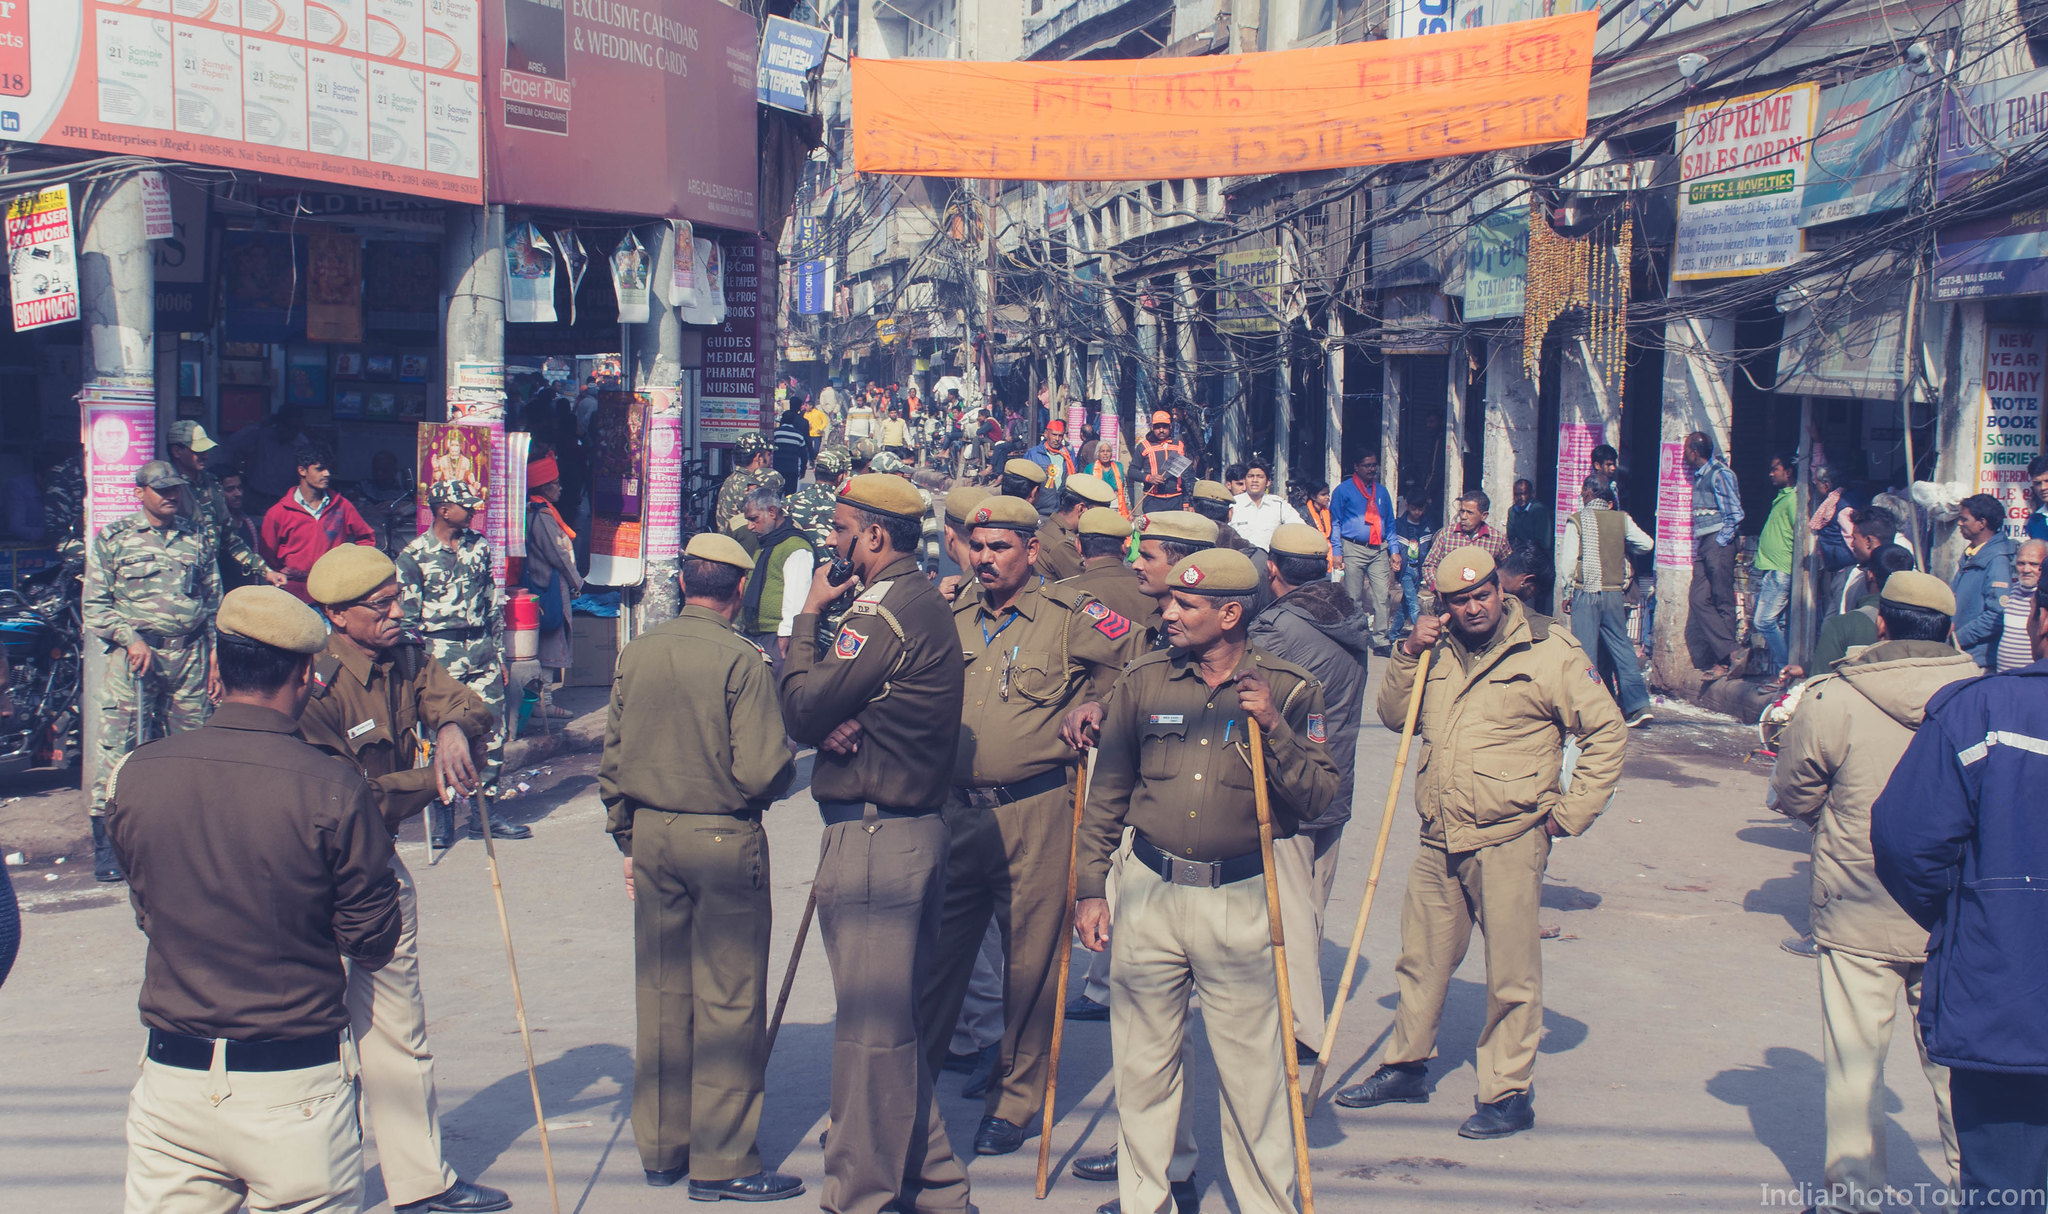 Policemen keeping a watch on crowd and traffic during a street procession